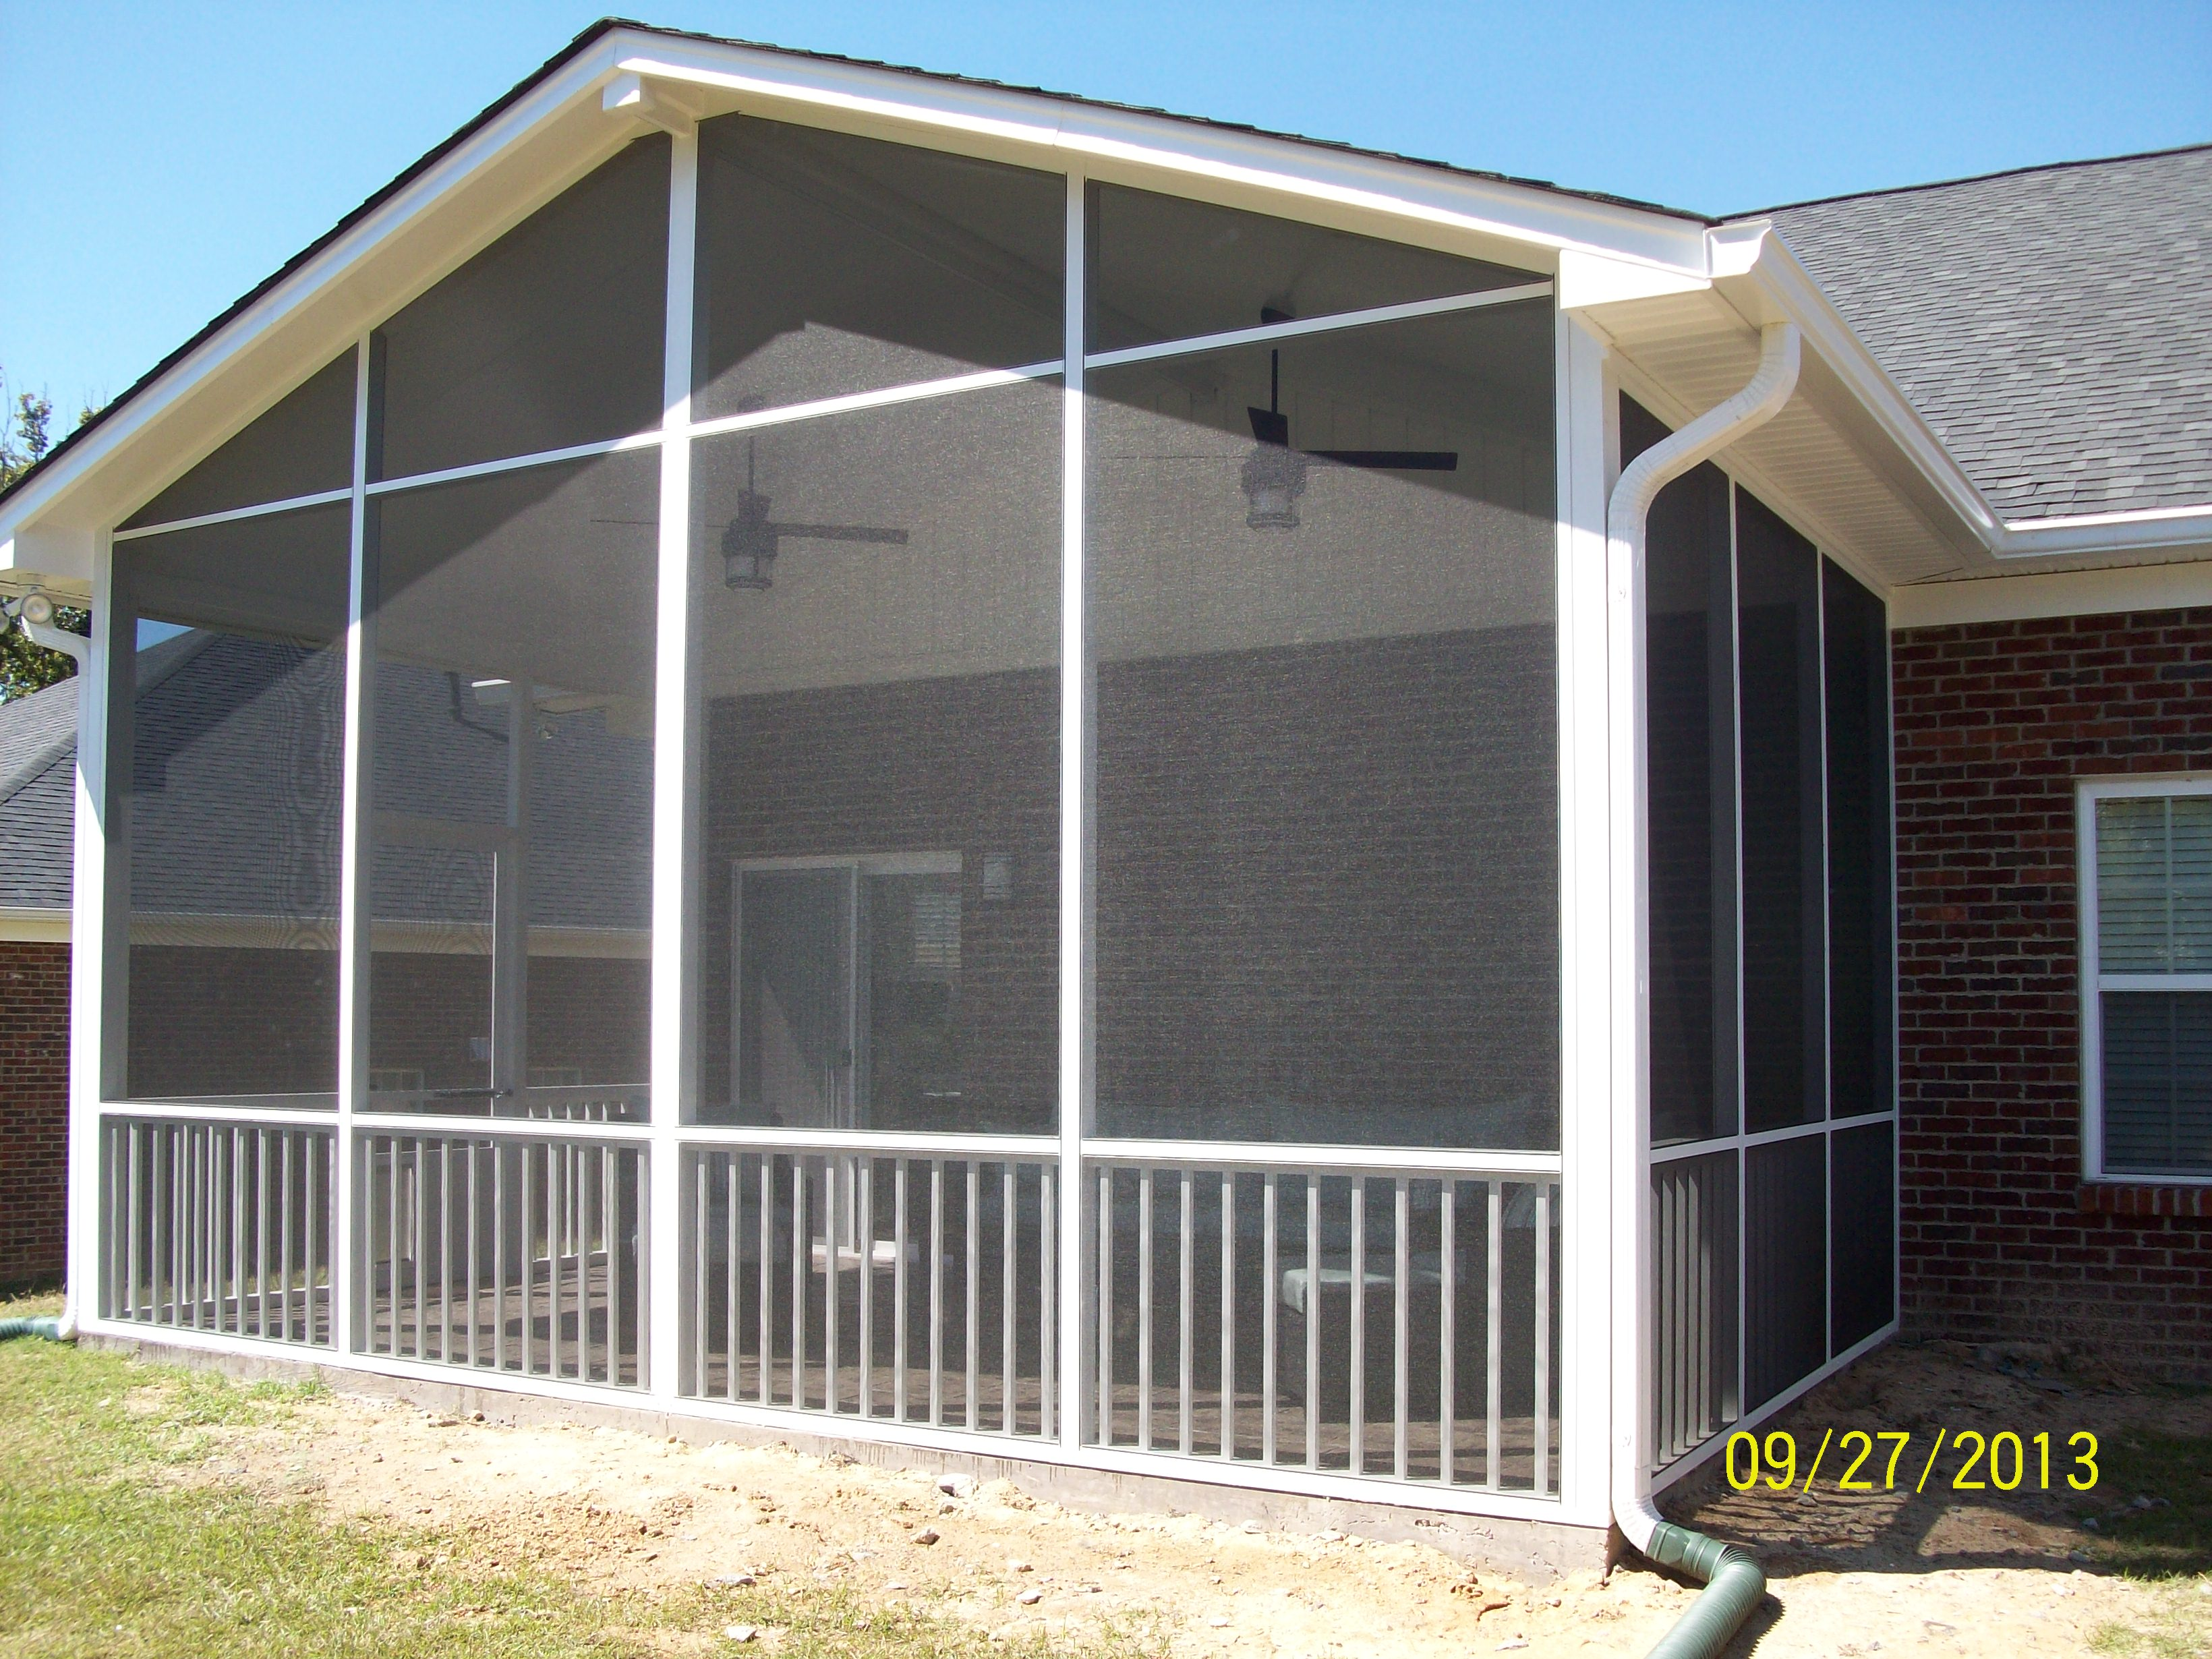 enclosure installation rooms porch richmond screen screened room systems deck and